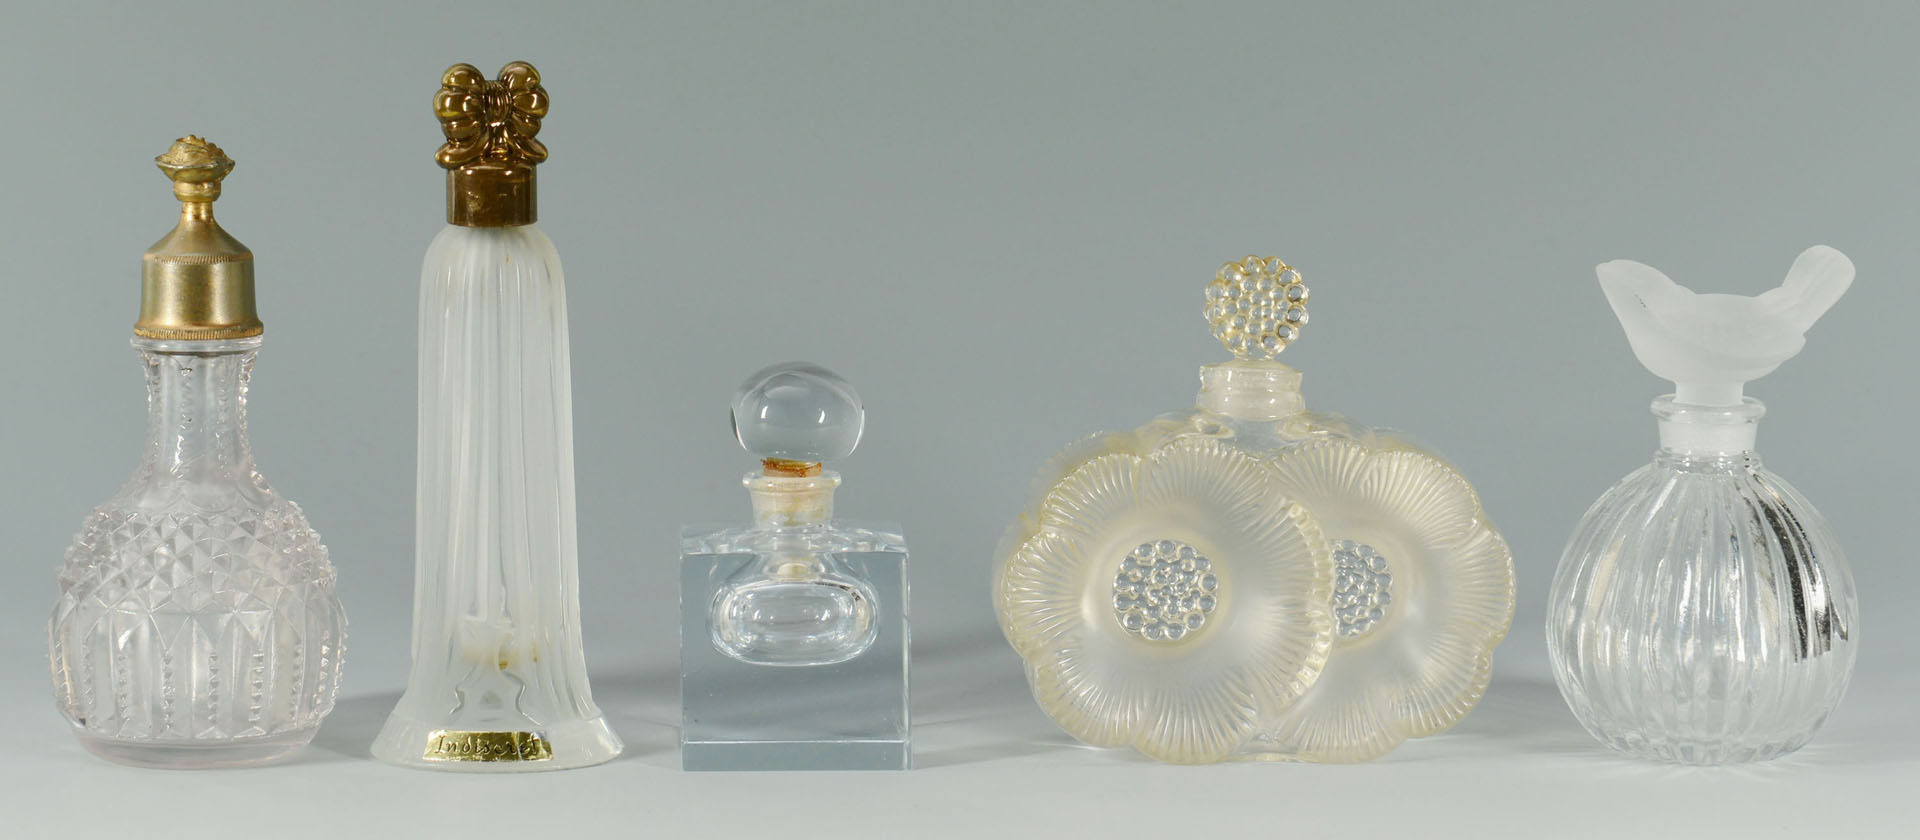 Lot 364: 5 Vintage glass perfume bottles inc. Lalique